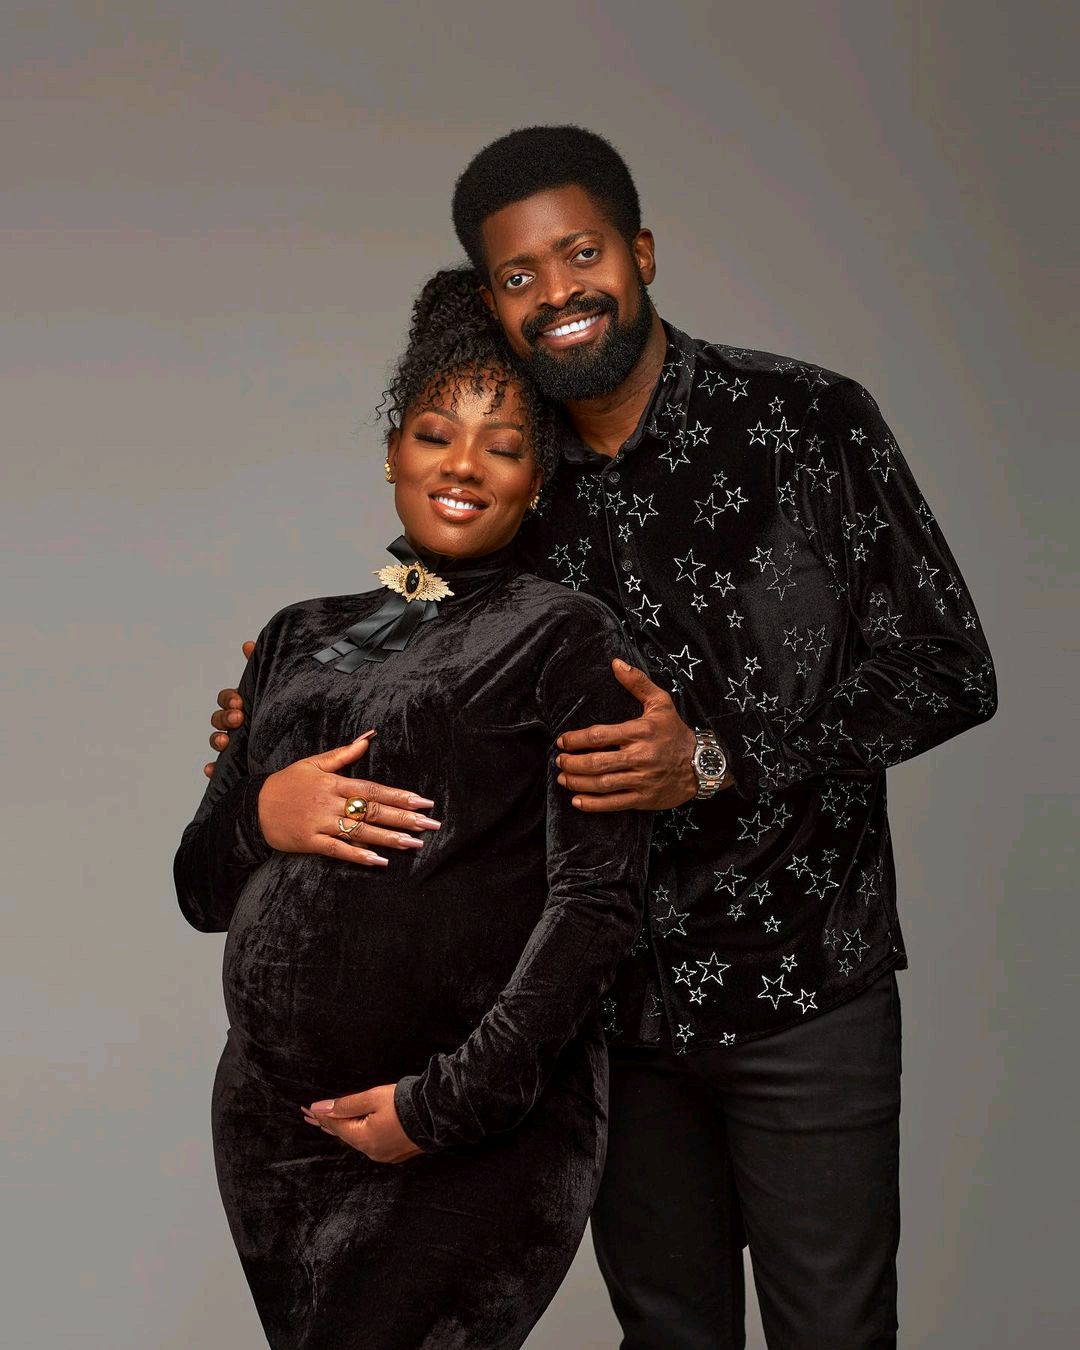 Basketmouth's Wife Celebrates Pregnancy On Her Birthday After Three Miscarriages